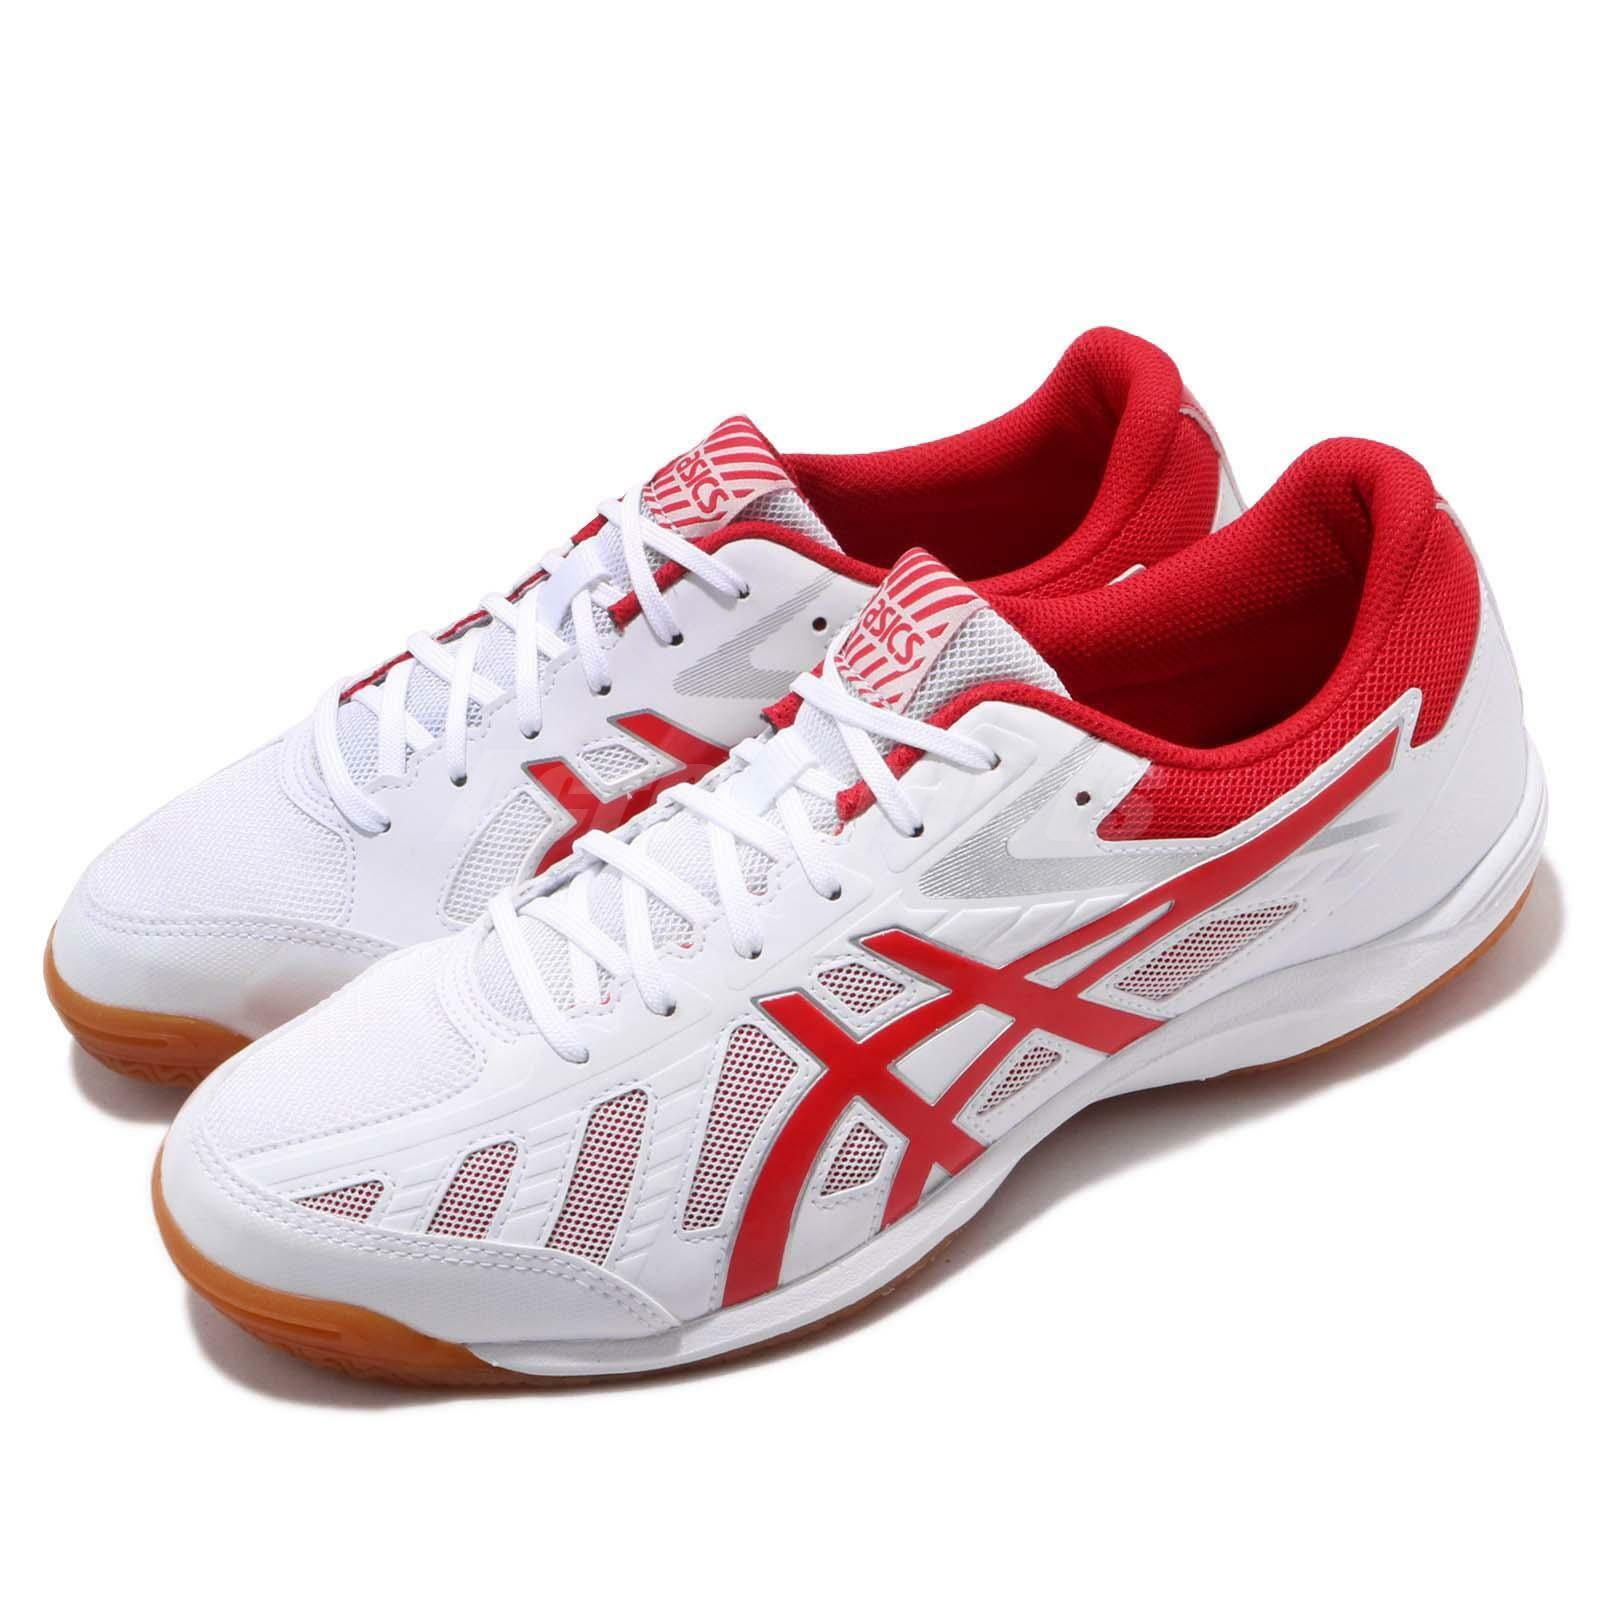 Asics Attack Hyperbeat SP 3 bianca rosso Gum Men Table Tennis scarpe 1073A004-101